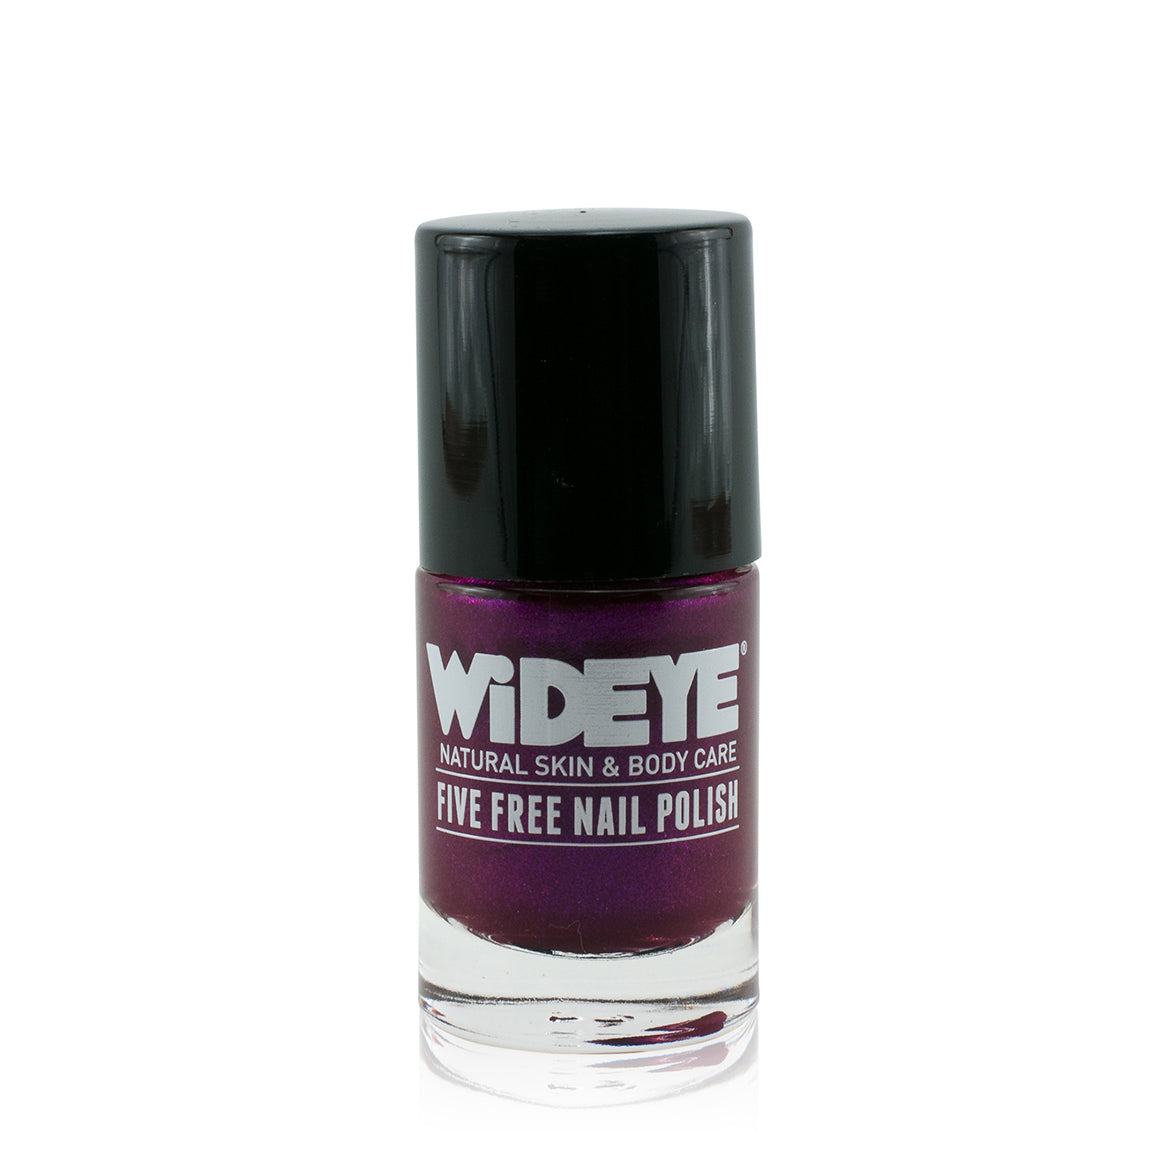 Deep purple shimmer nail varnish in glass bottle by WiDEYE.